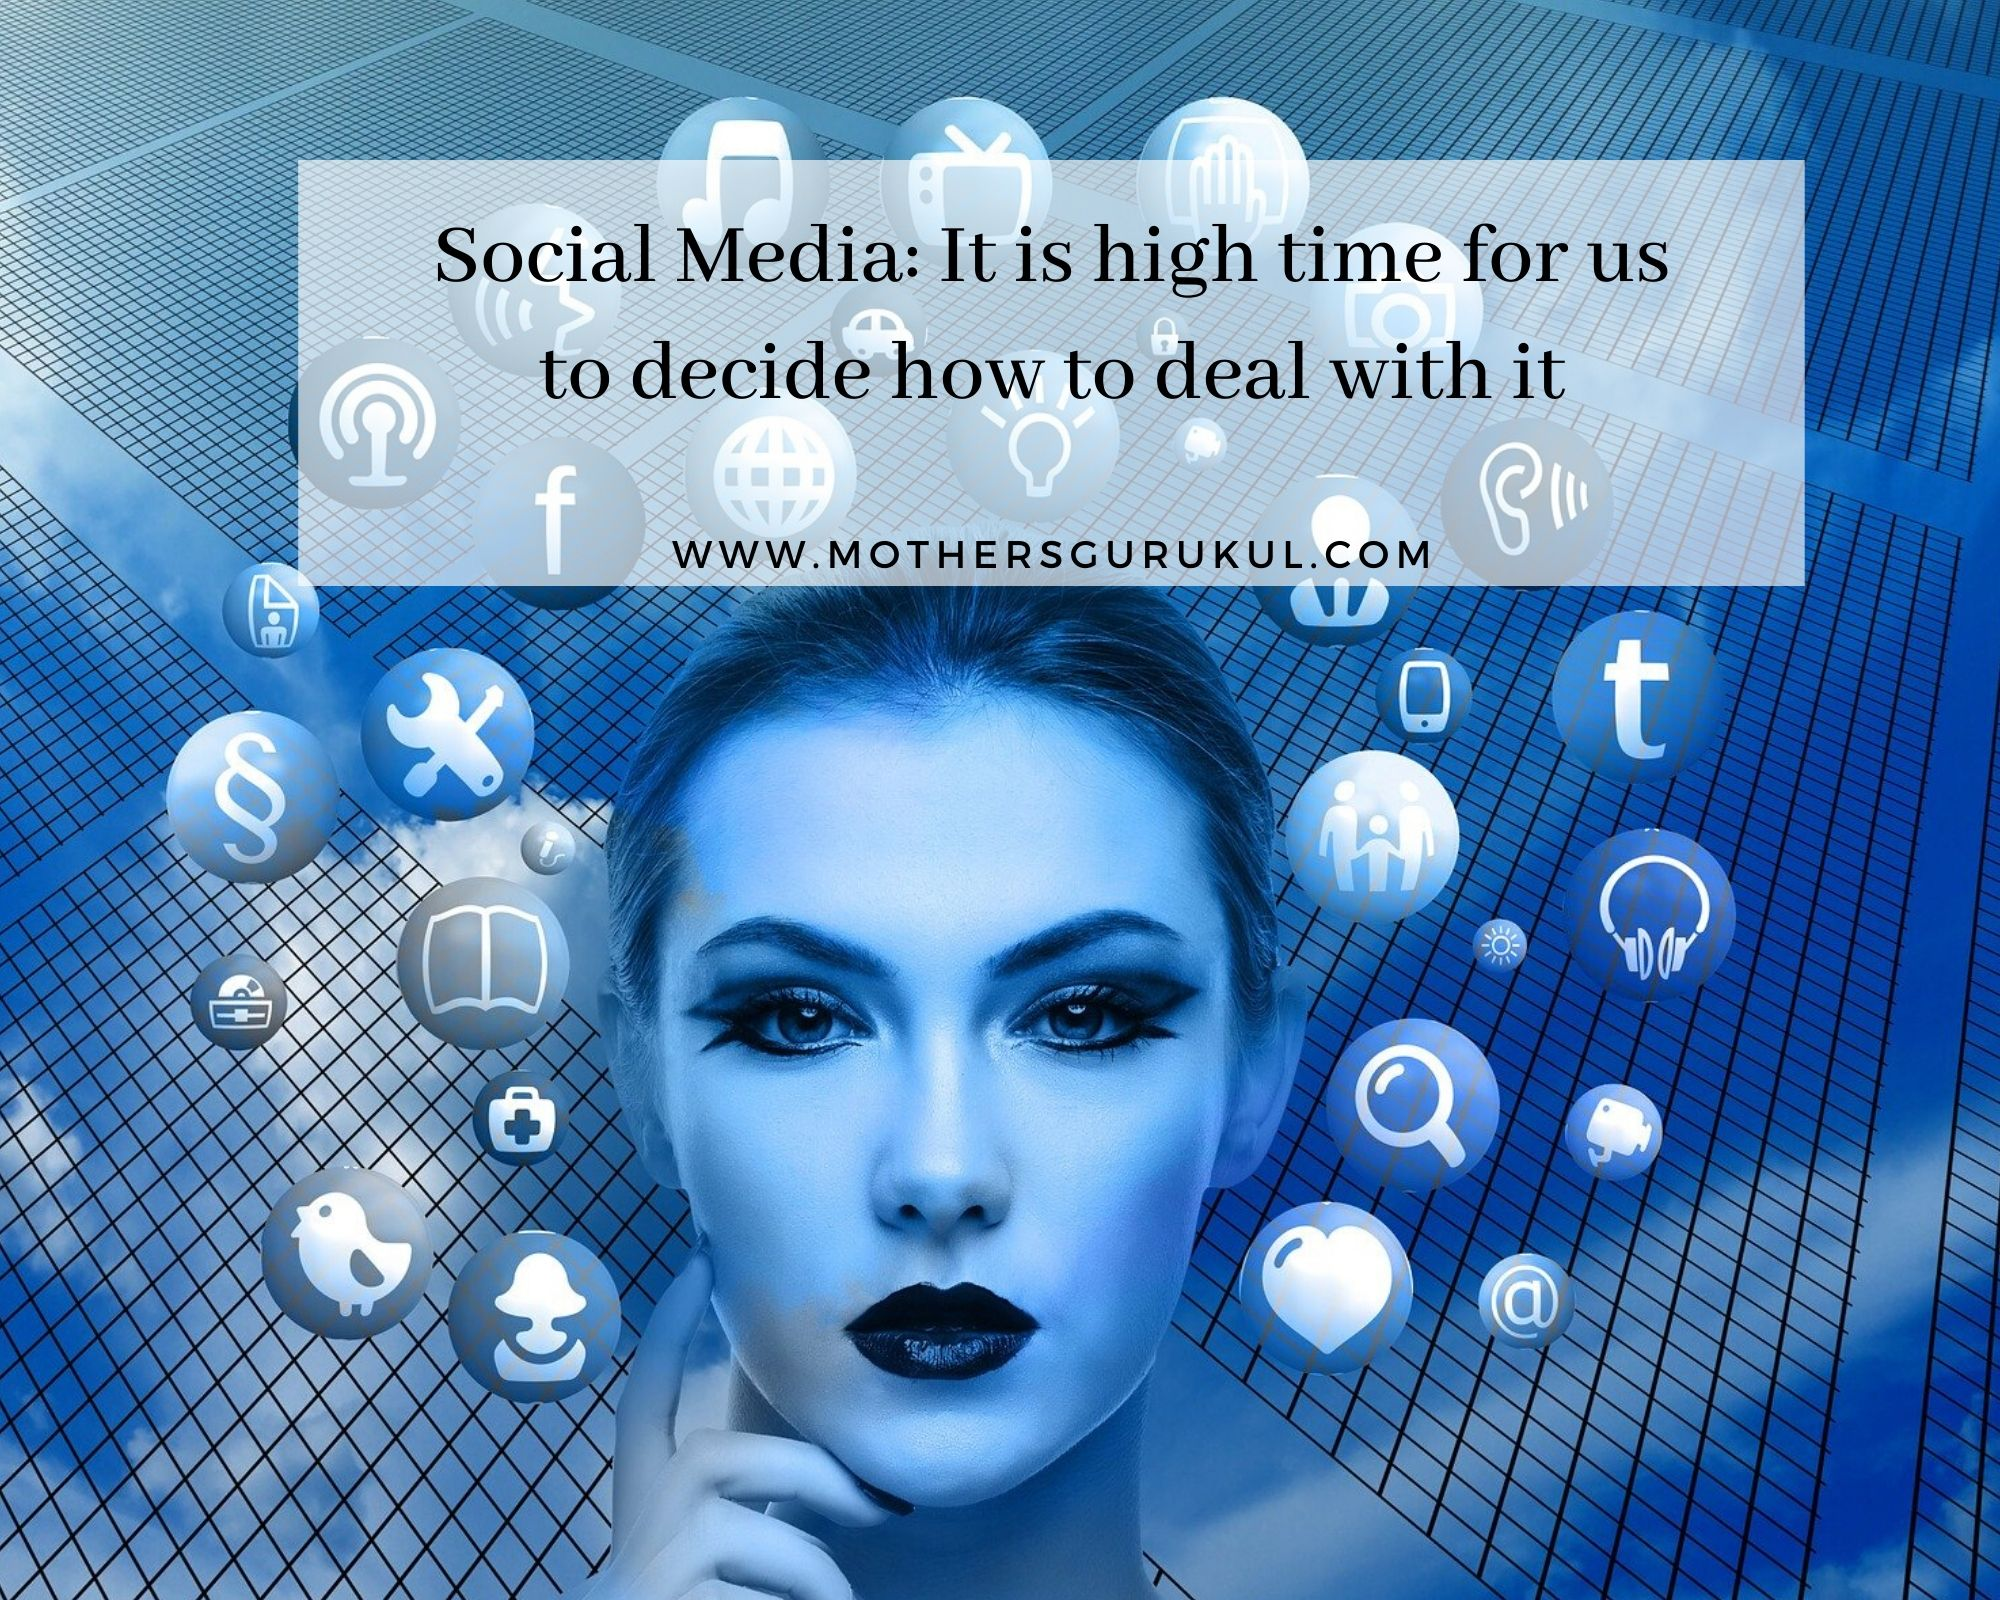 Social Media: It is high time for us to decide how to deal with it